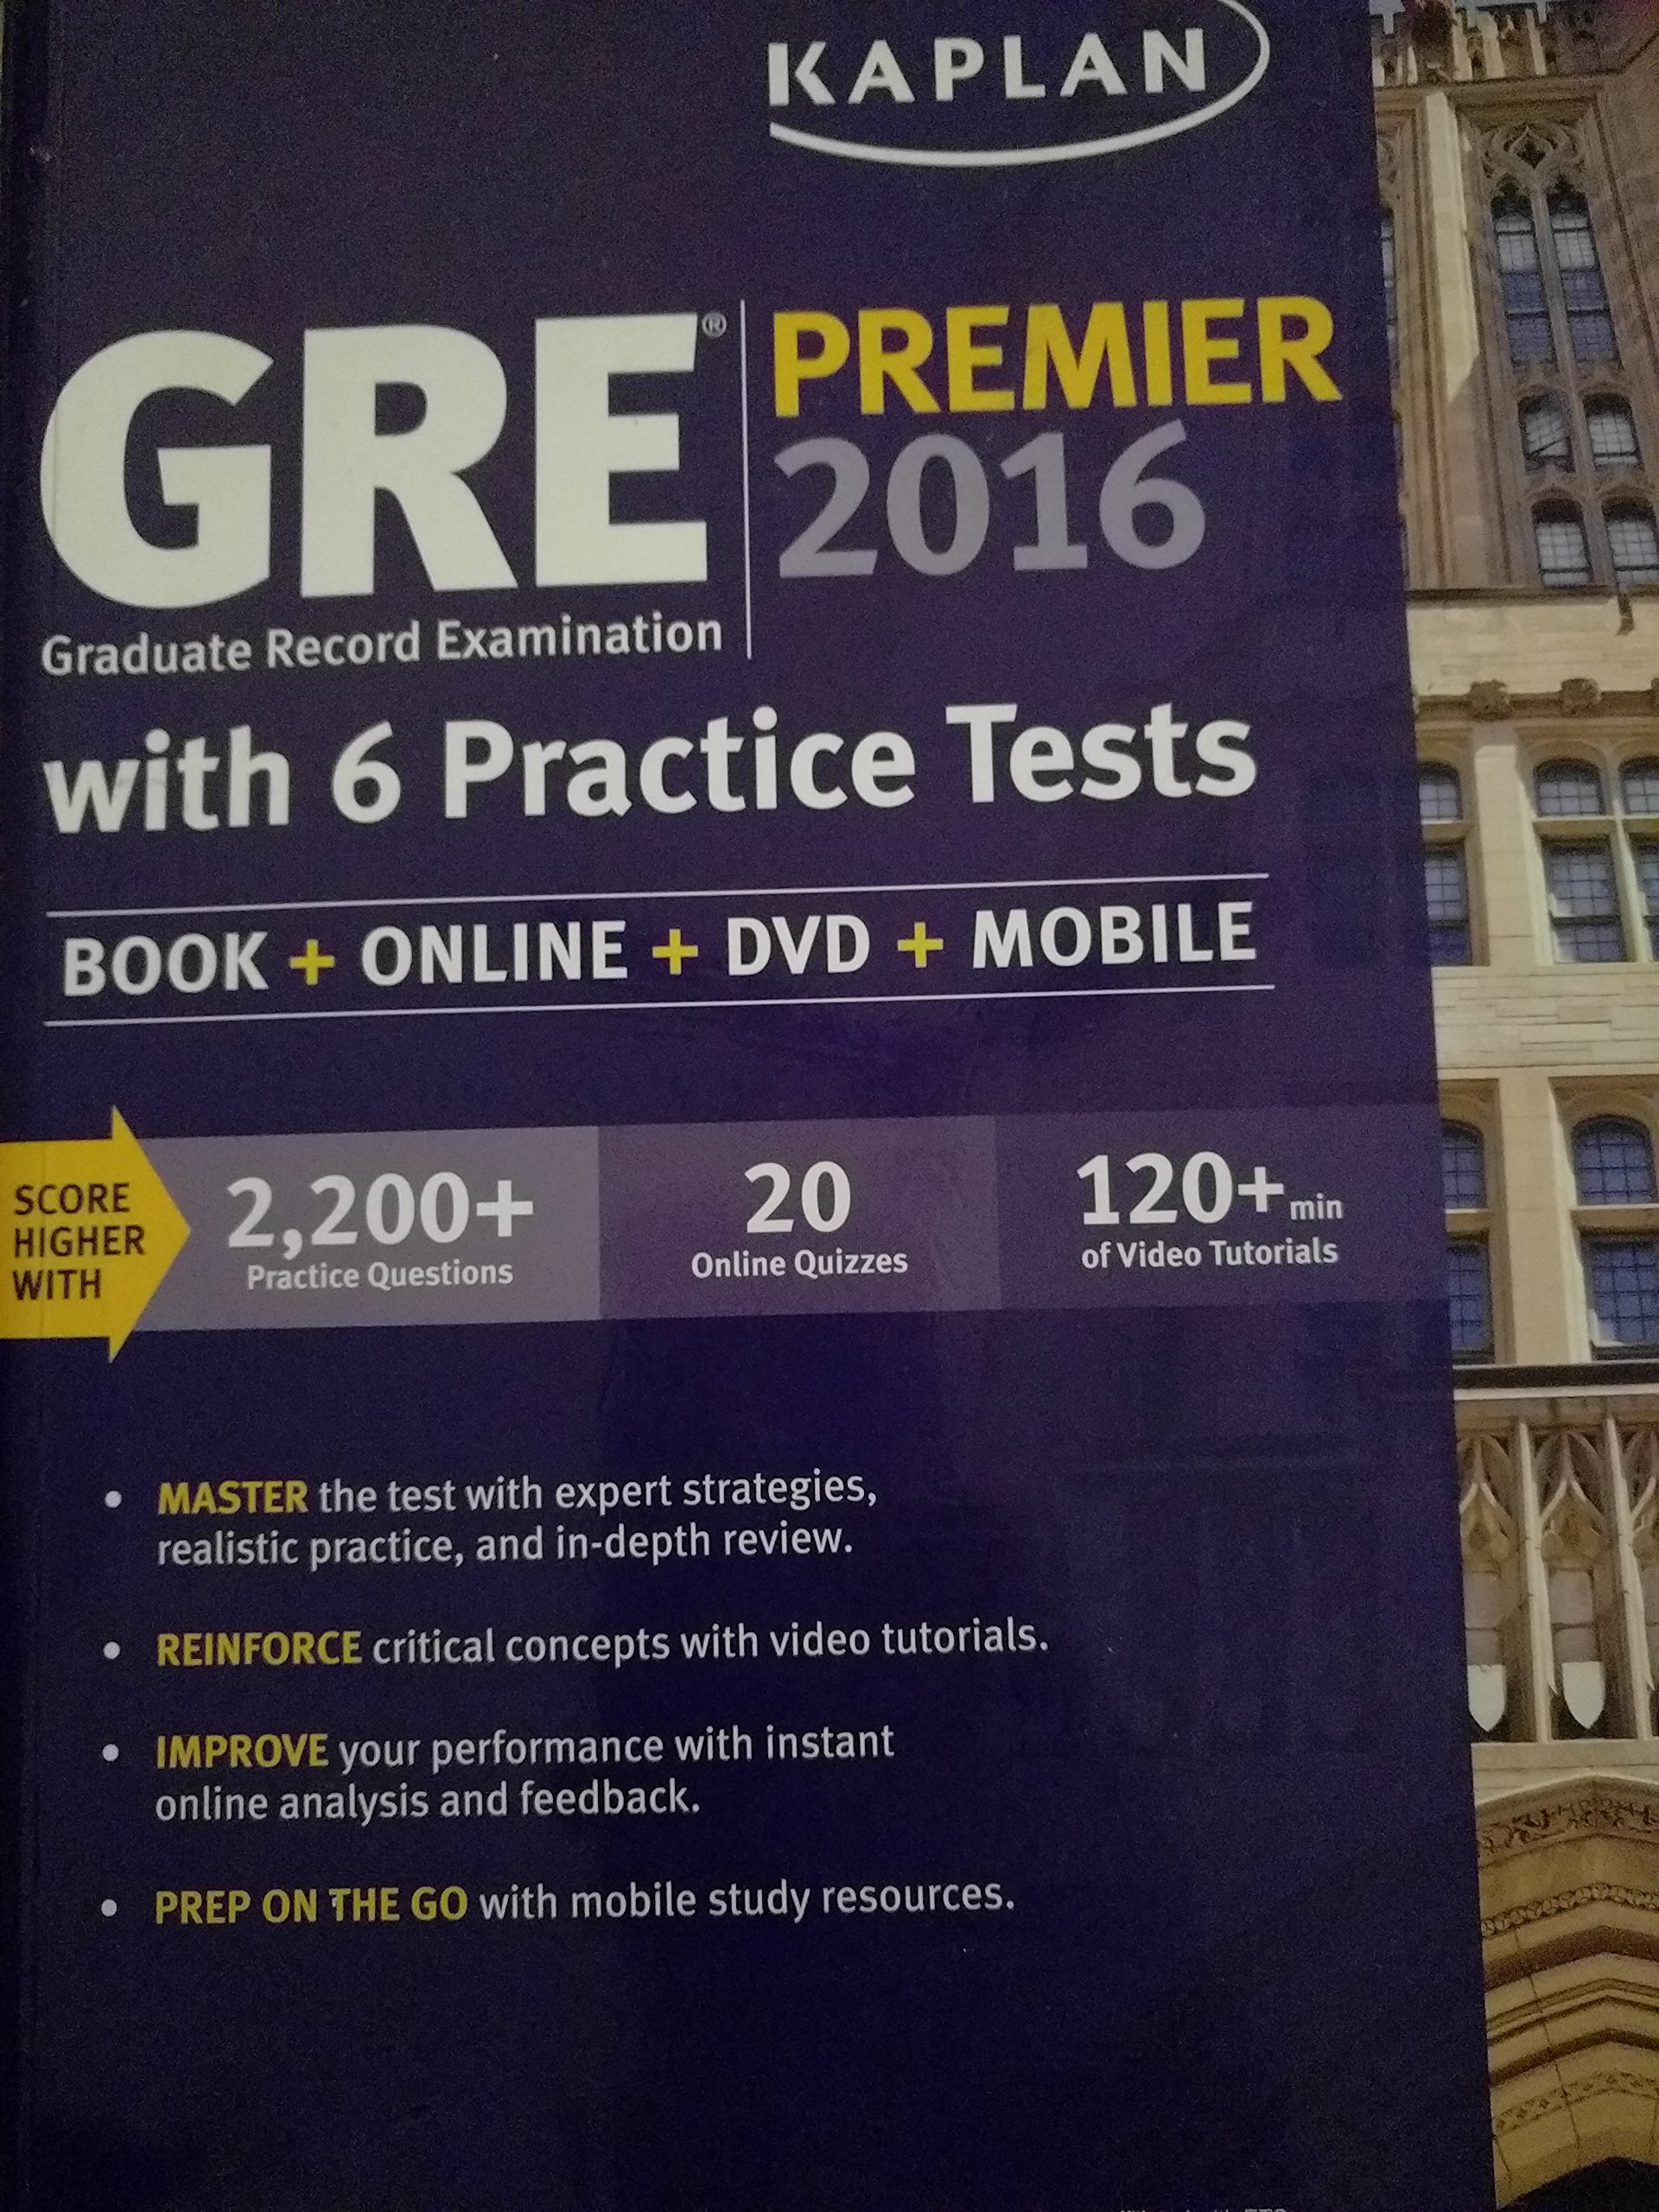 gre essay writing books You should also practice writing a few essays, under timed or untimed conditions, to gain familiarity with how to analyze the types of essay prompts used on the gre, and to gain an understanding of what sort of essay length and argument complexity to strive for on test day.